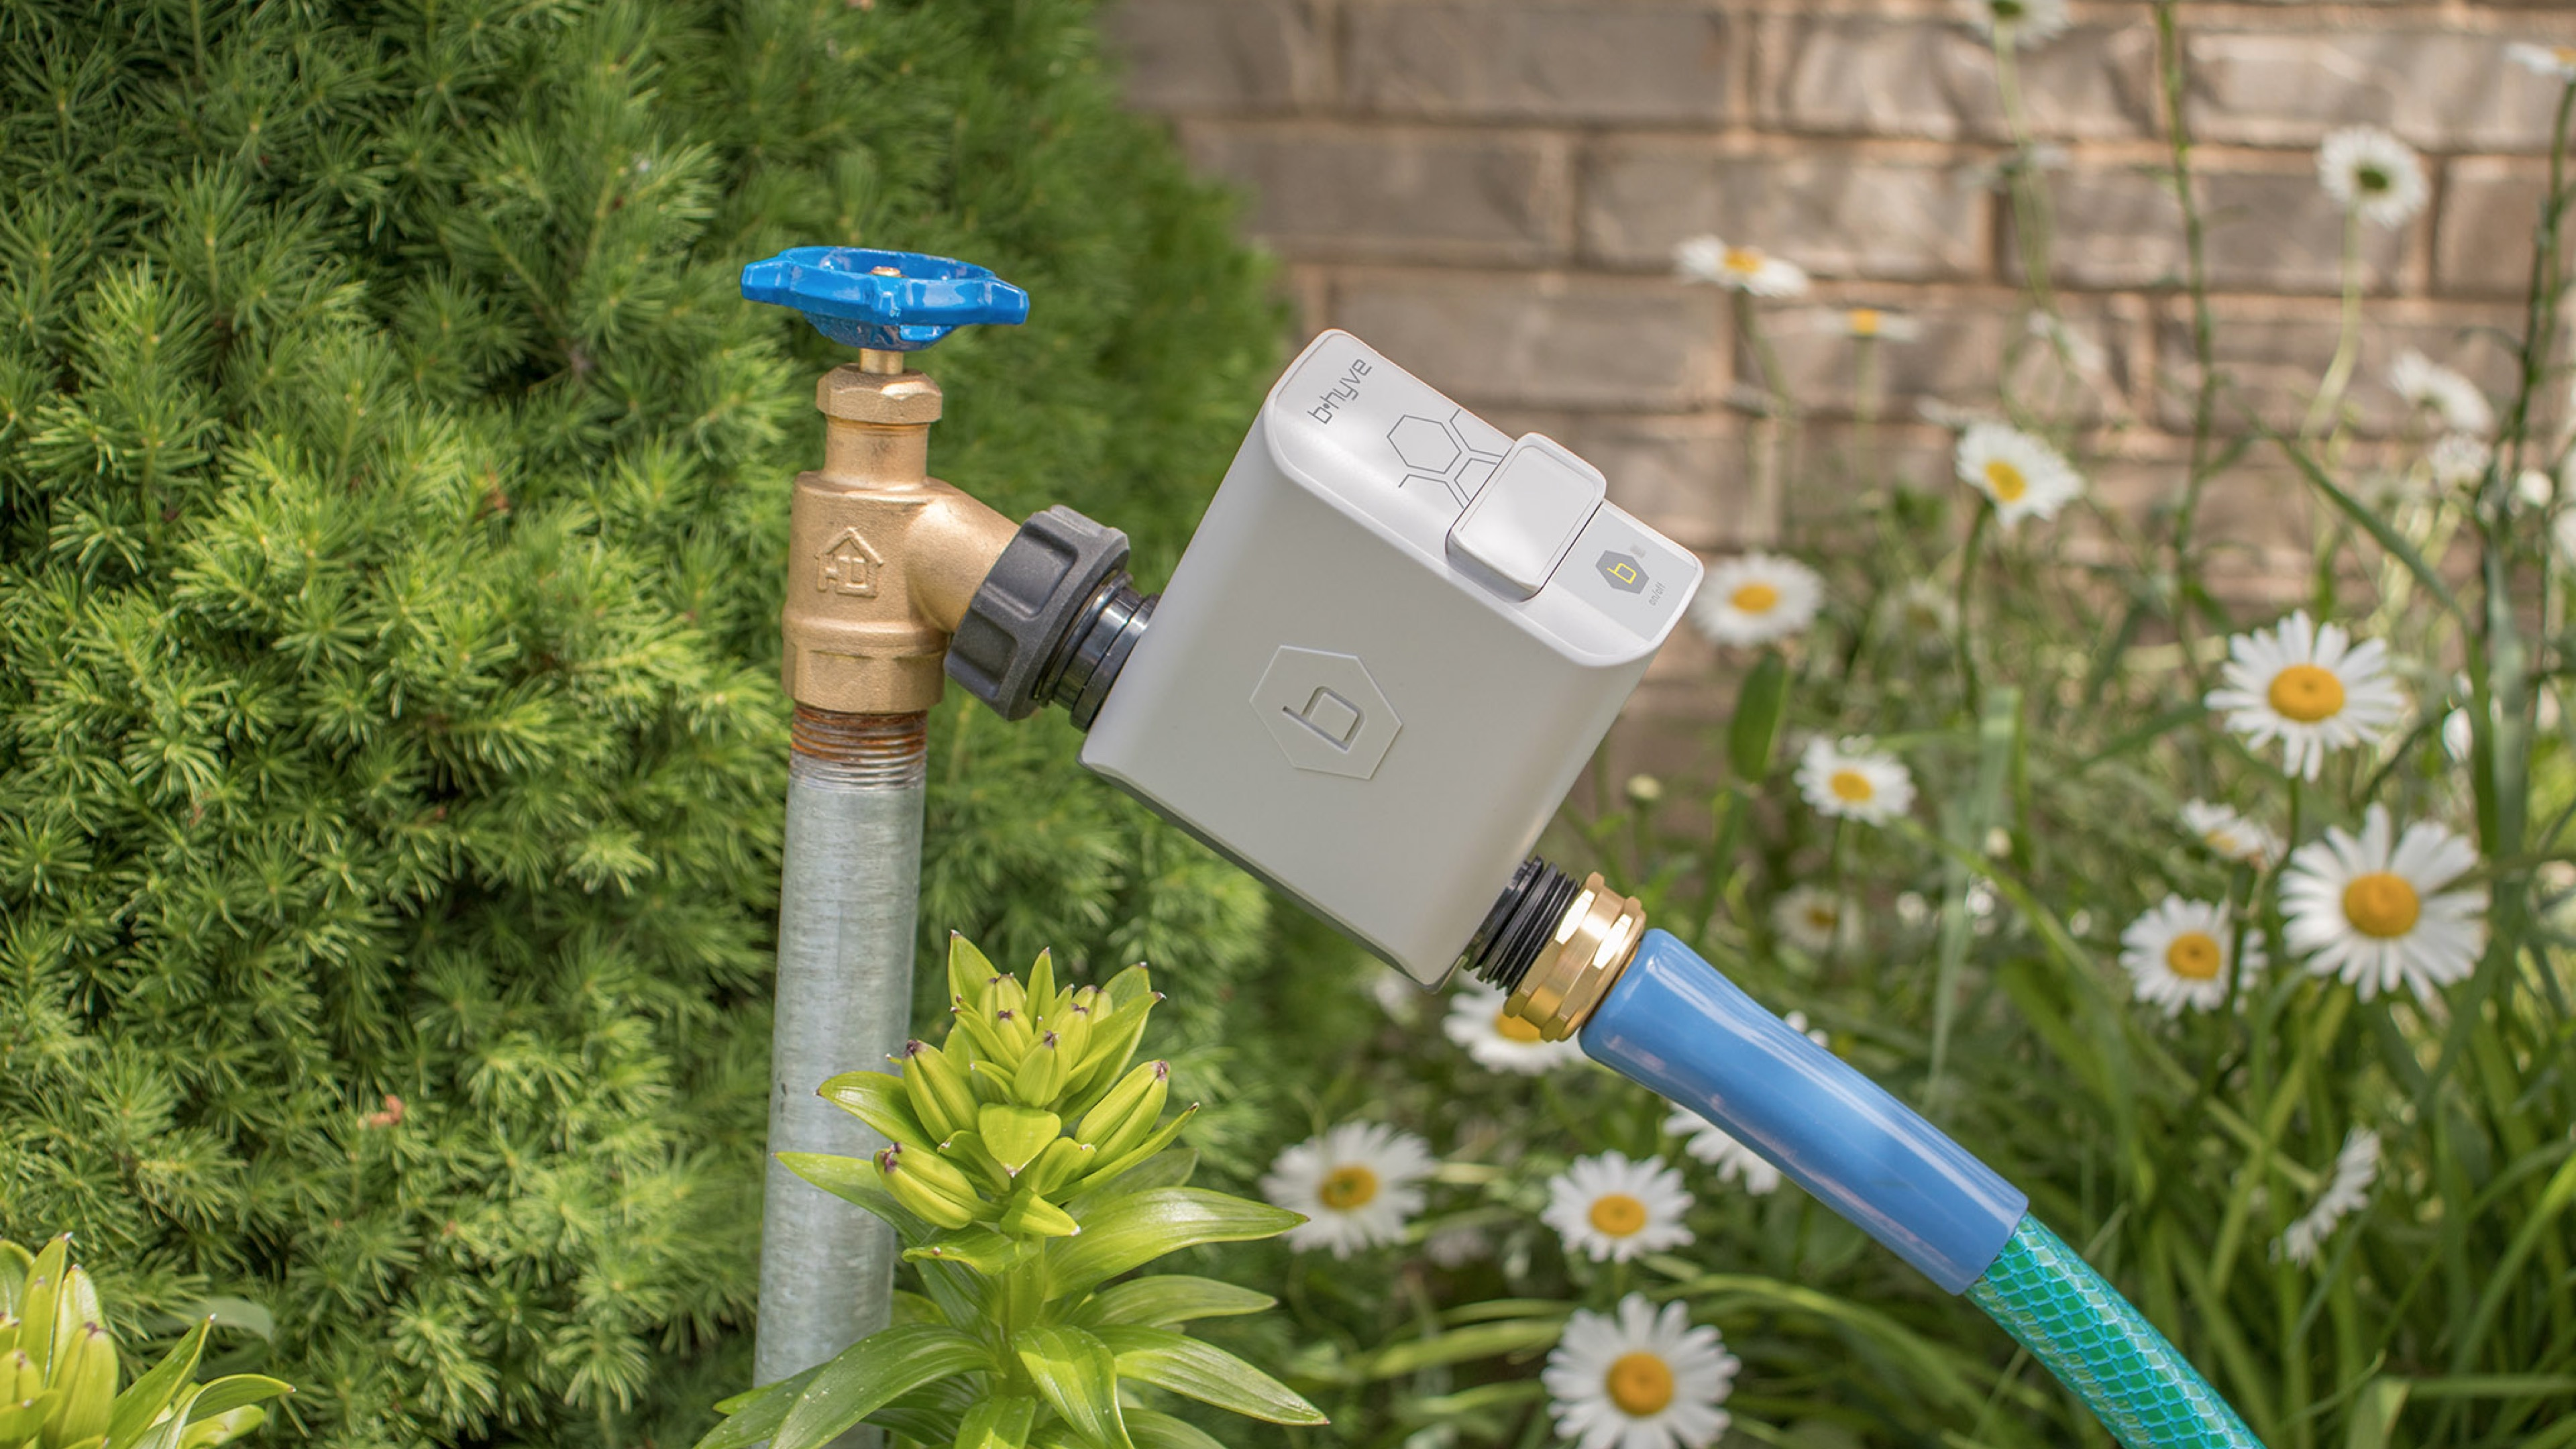 Orbit Adds HomeKit Support To Its Line Of B Hyve Smart Irrigation Products